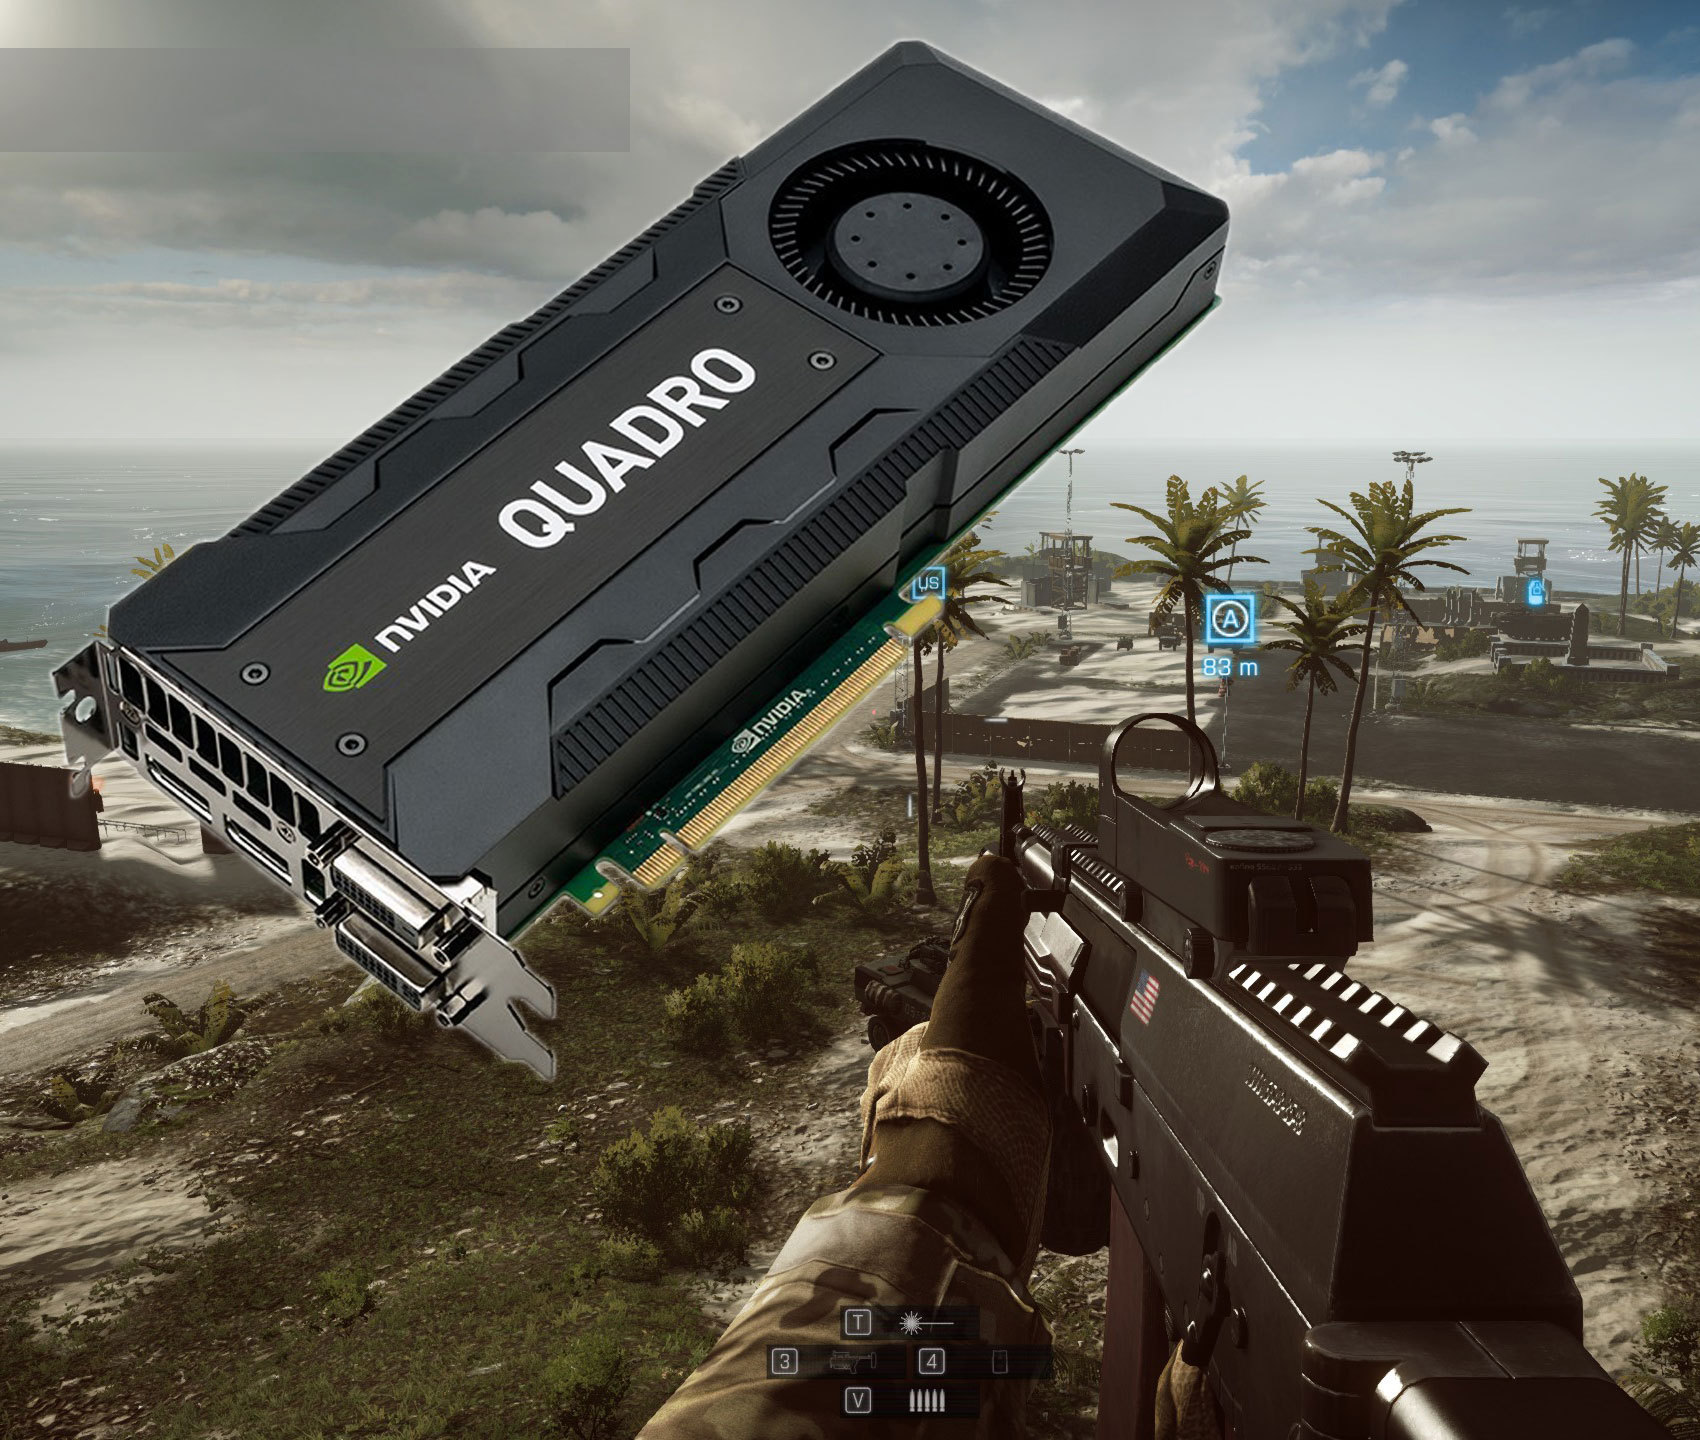 Gaming on a Quadro video card